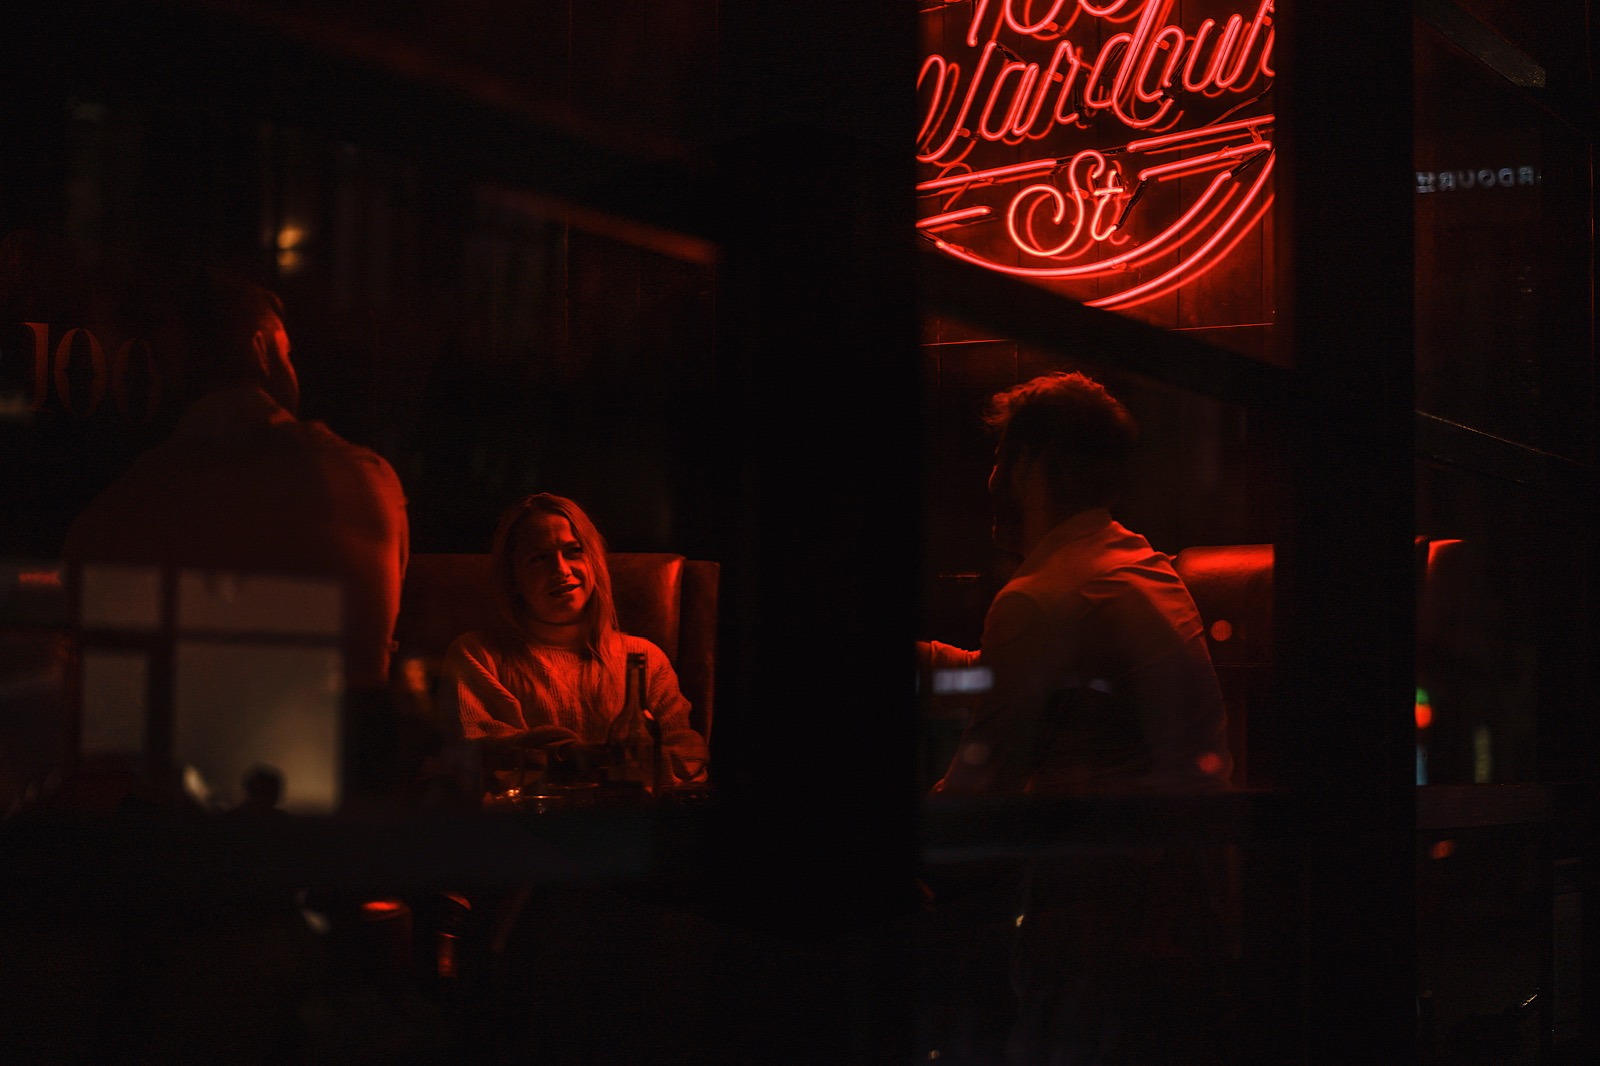 People in restruant talking under red neon sign